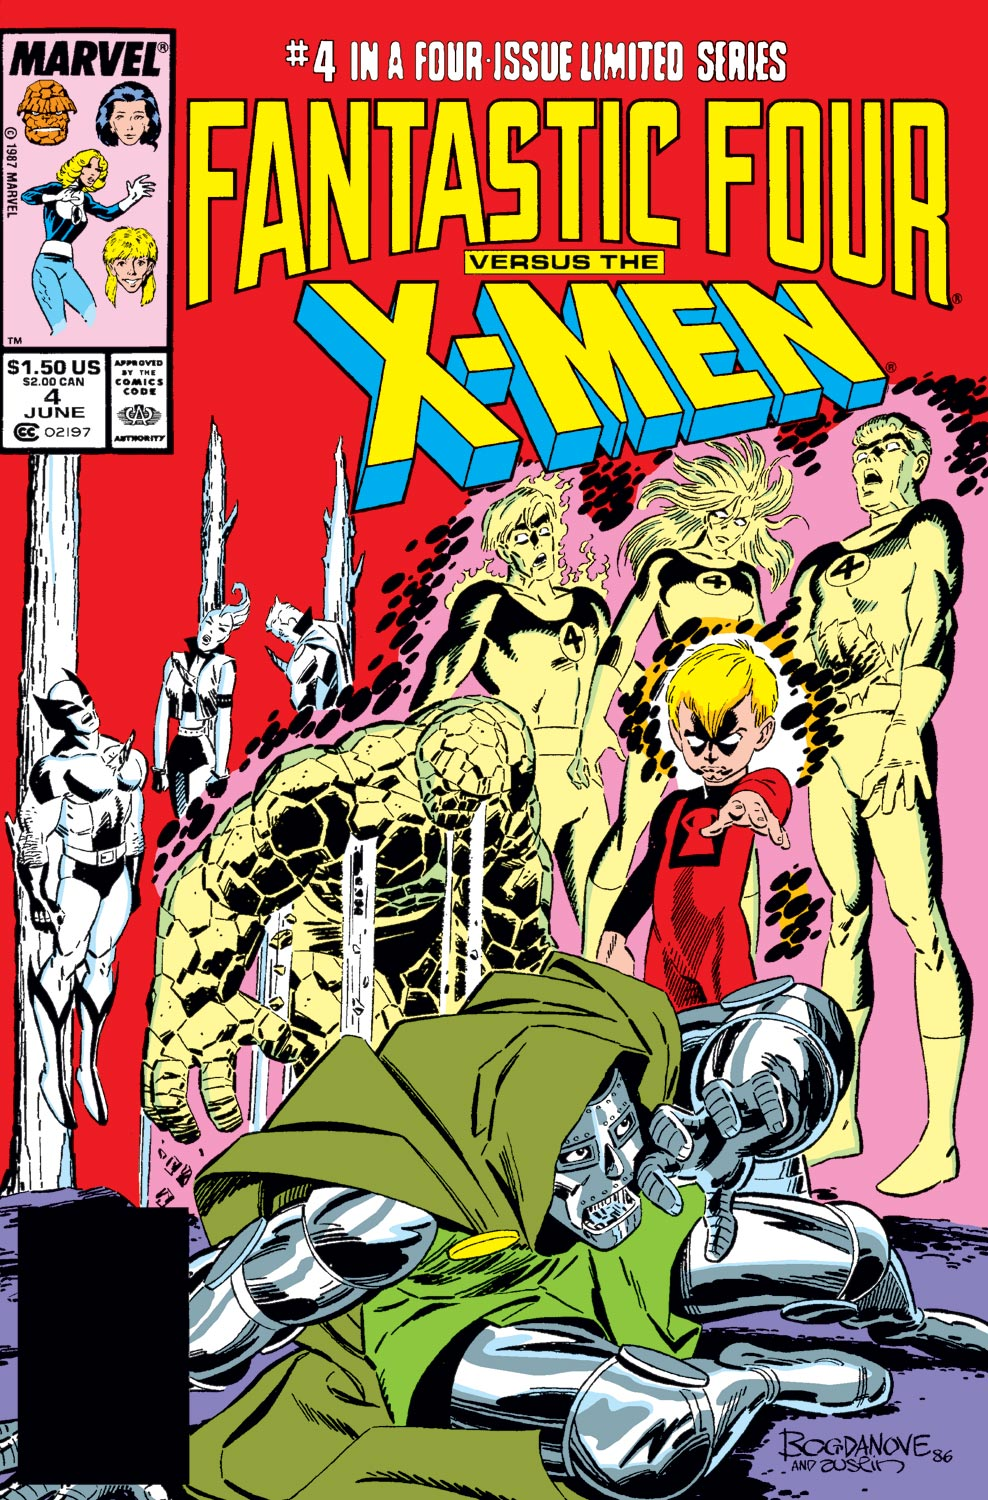 Fantastic Four Vs. X-Men (1987) #4